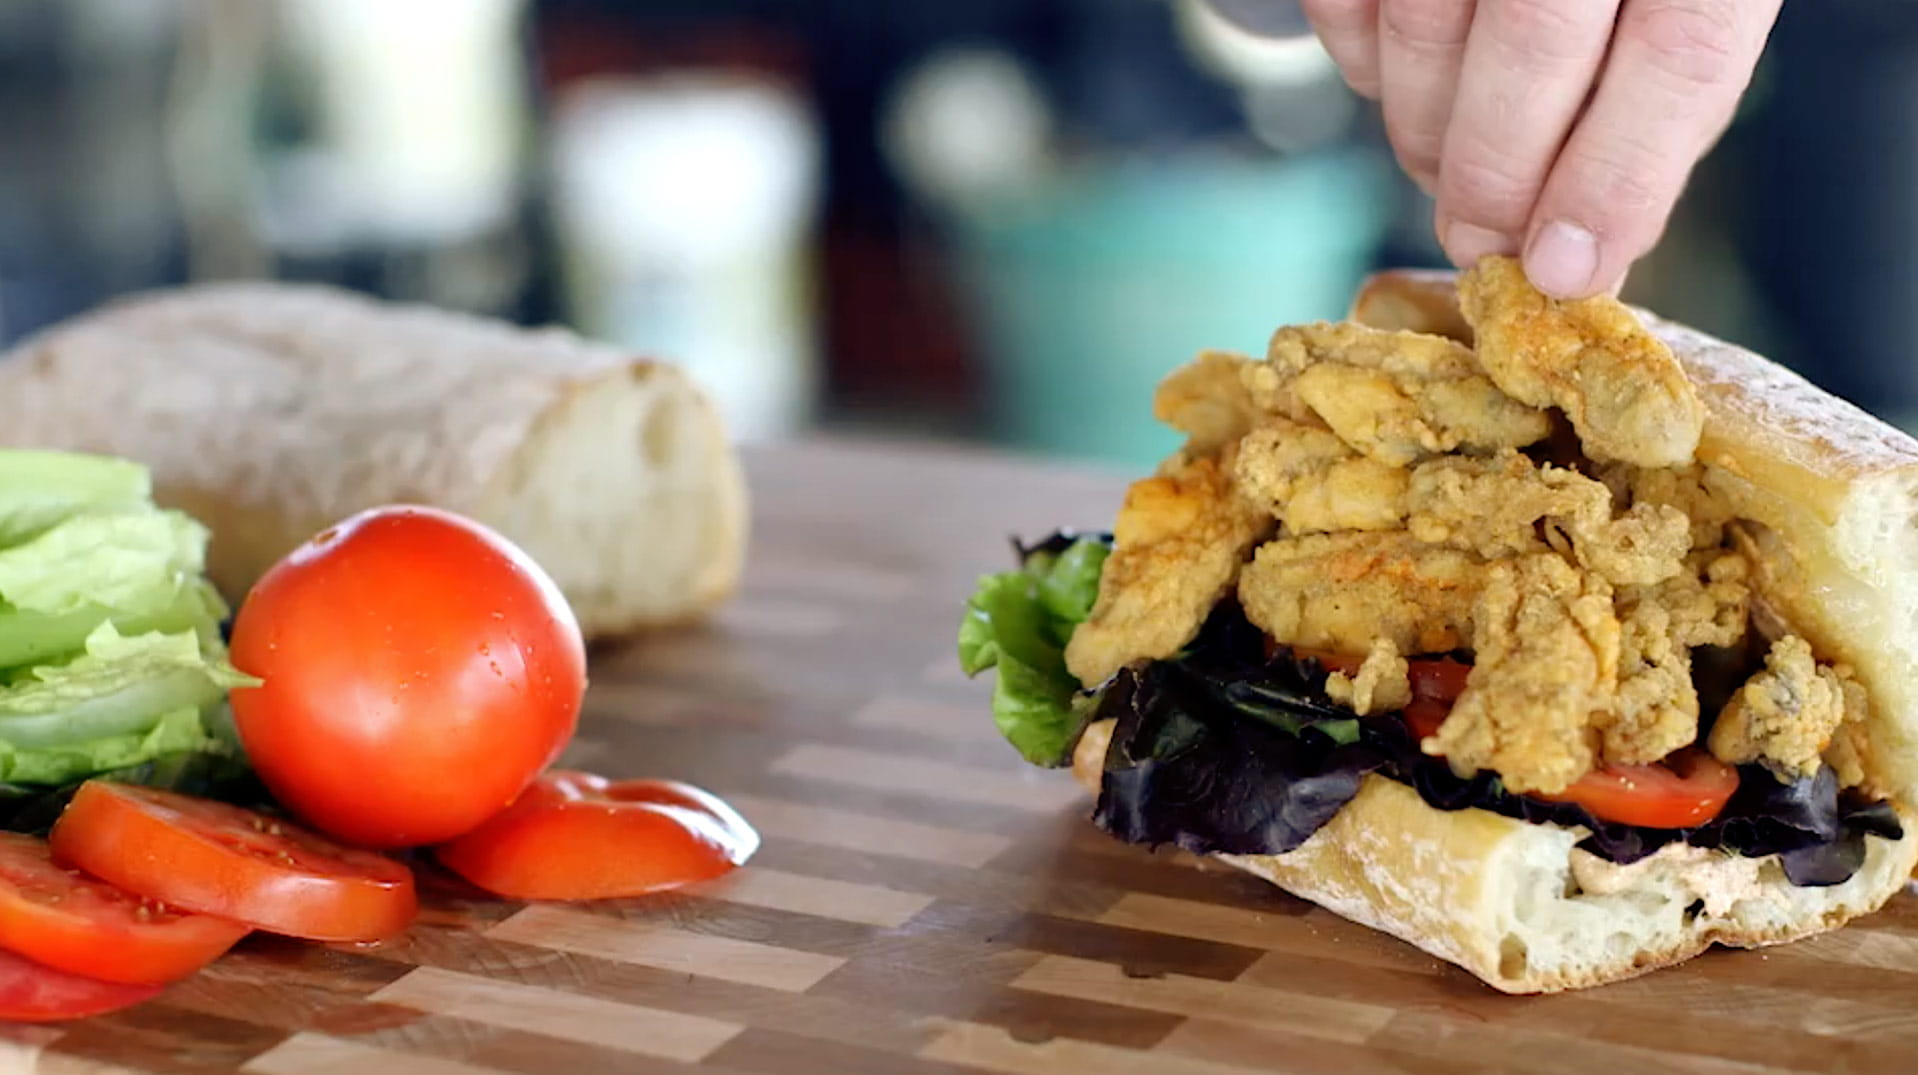 OLD BAY Oyster Po Boy with OLD BAY Tiger Sauce